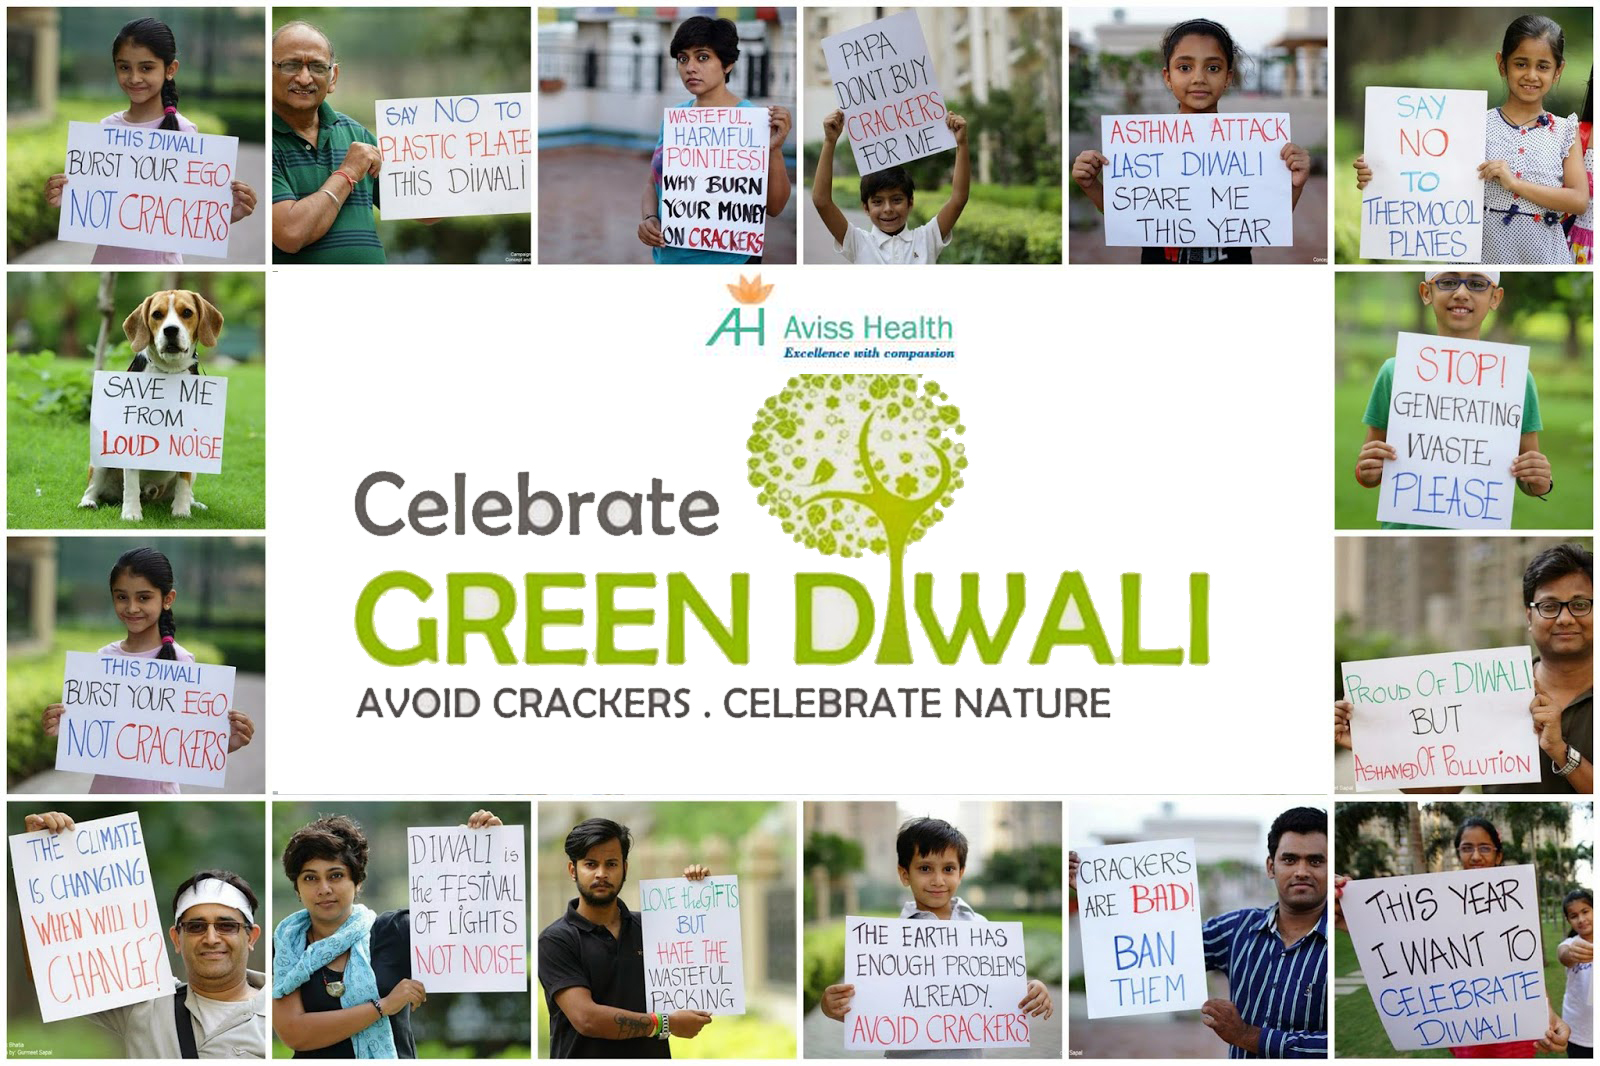 Celebrate Green Diwali and Breathe Easy, says Lung Experts